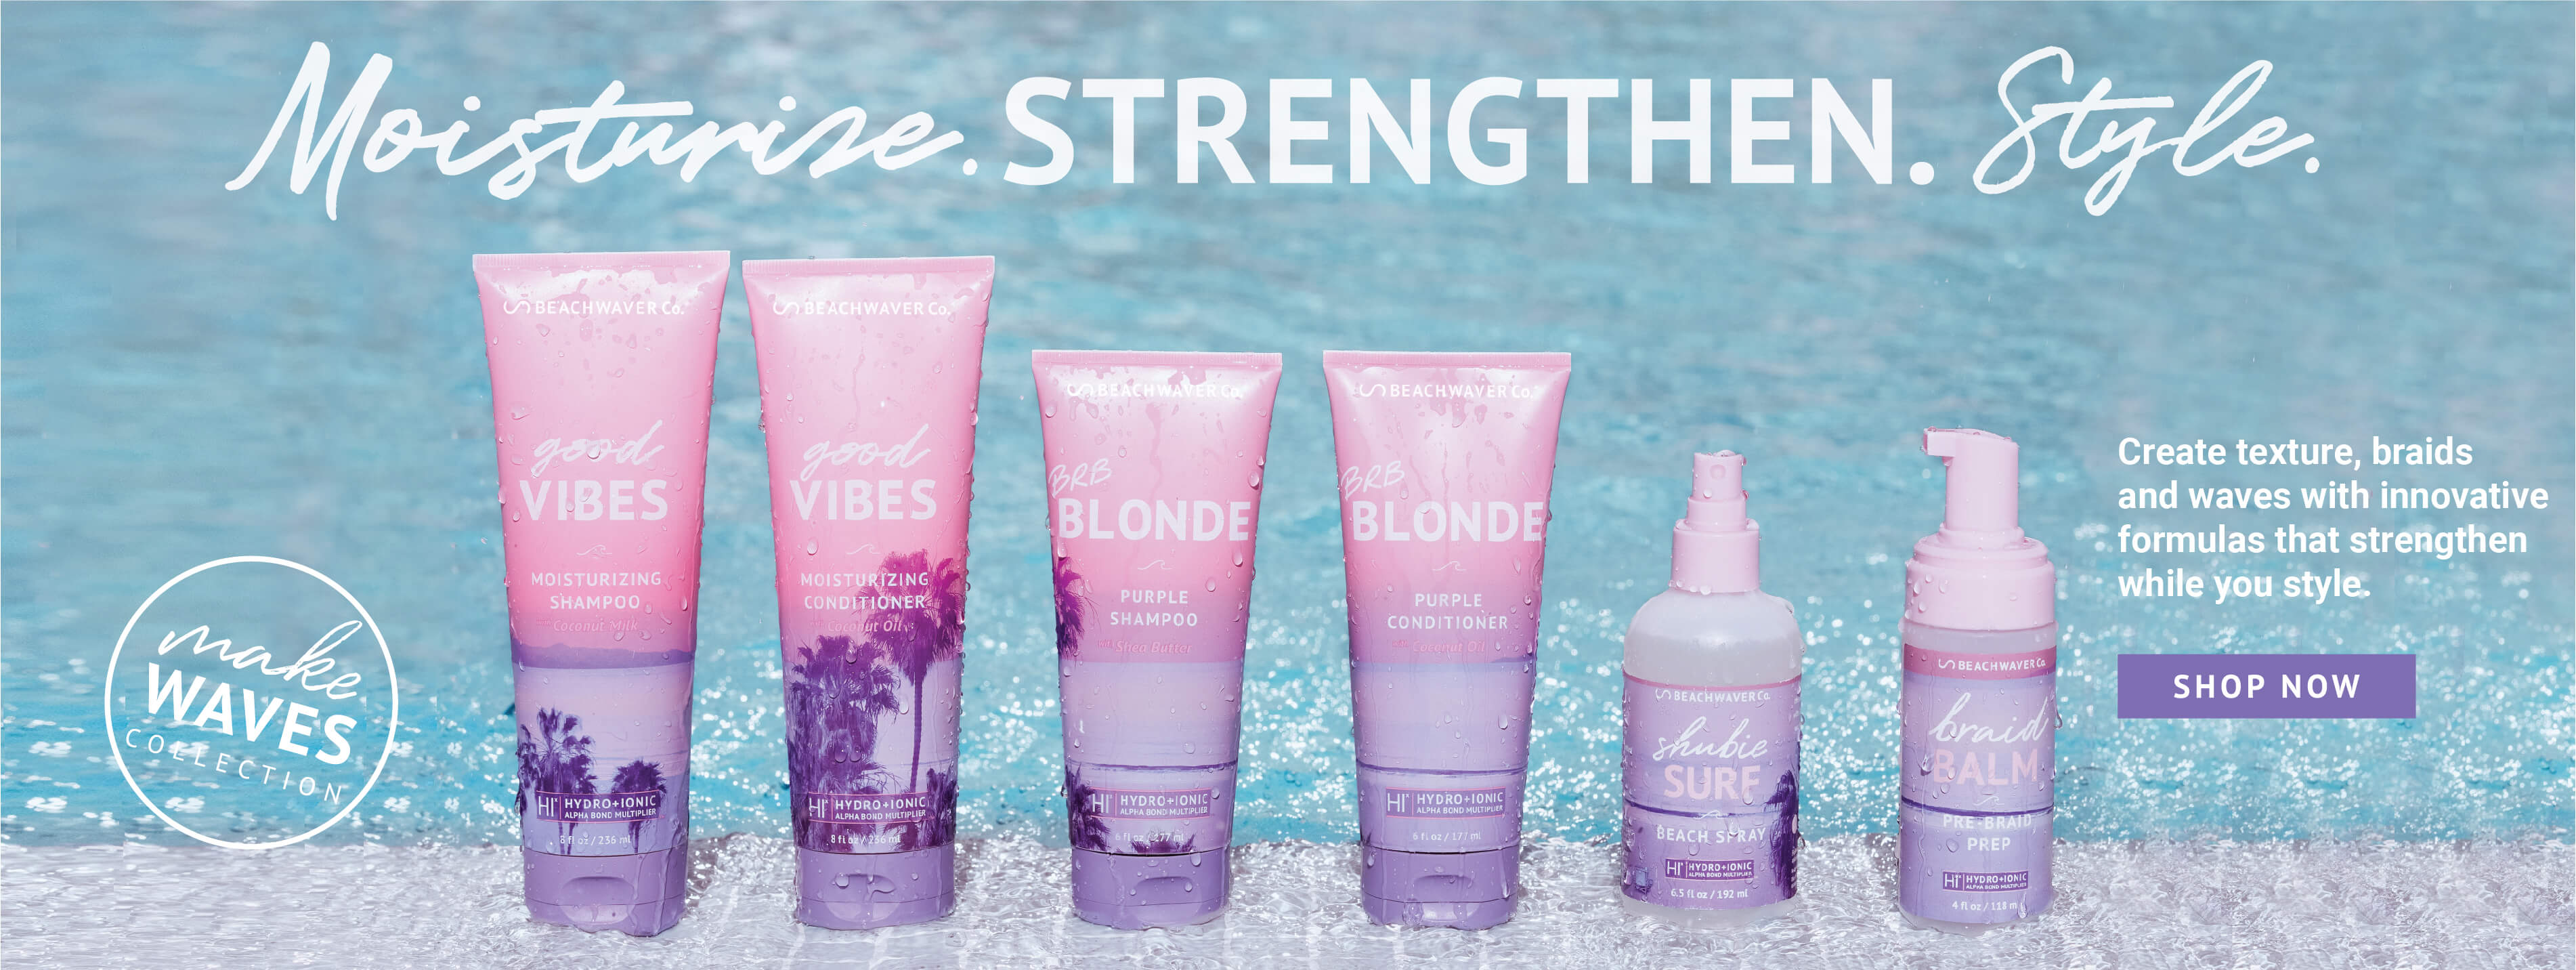 Moisturize. Strengthen. Style. Create texture, braids and waves with innovative forulas that strengthen while you style. Learn more.